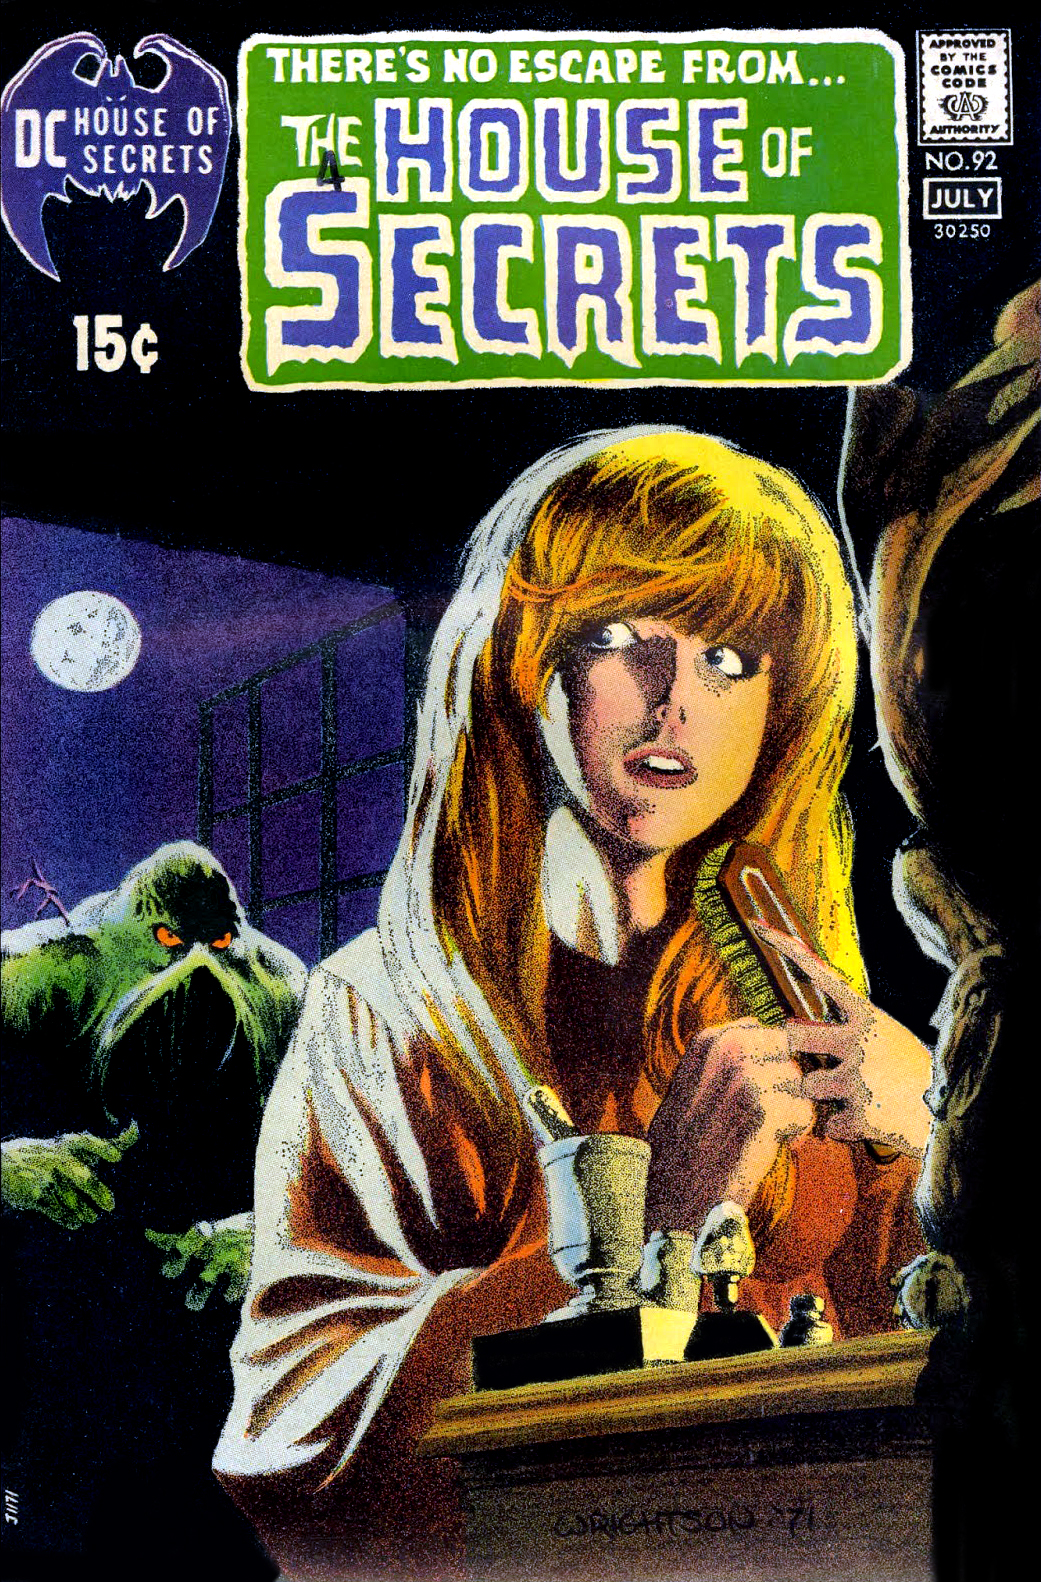 Swamp Thing story from House of Secrets #92